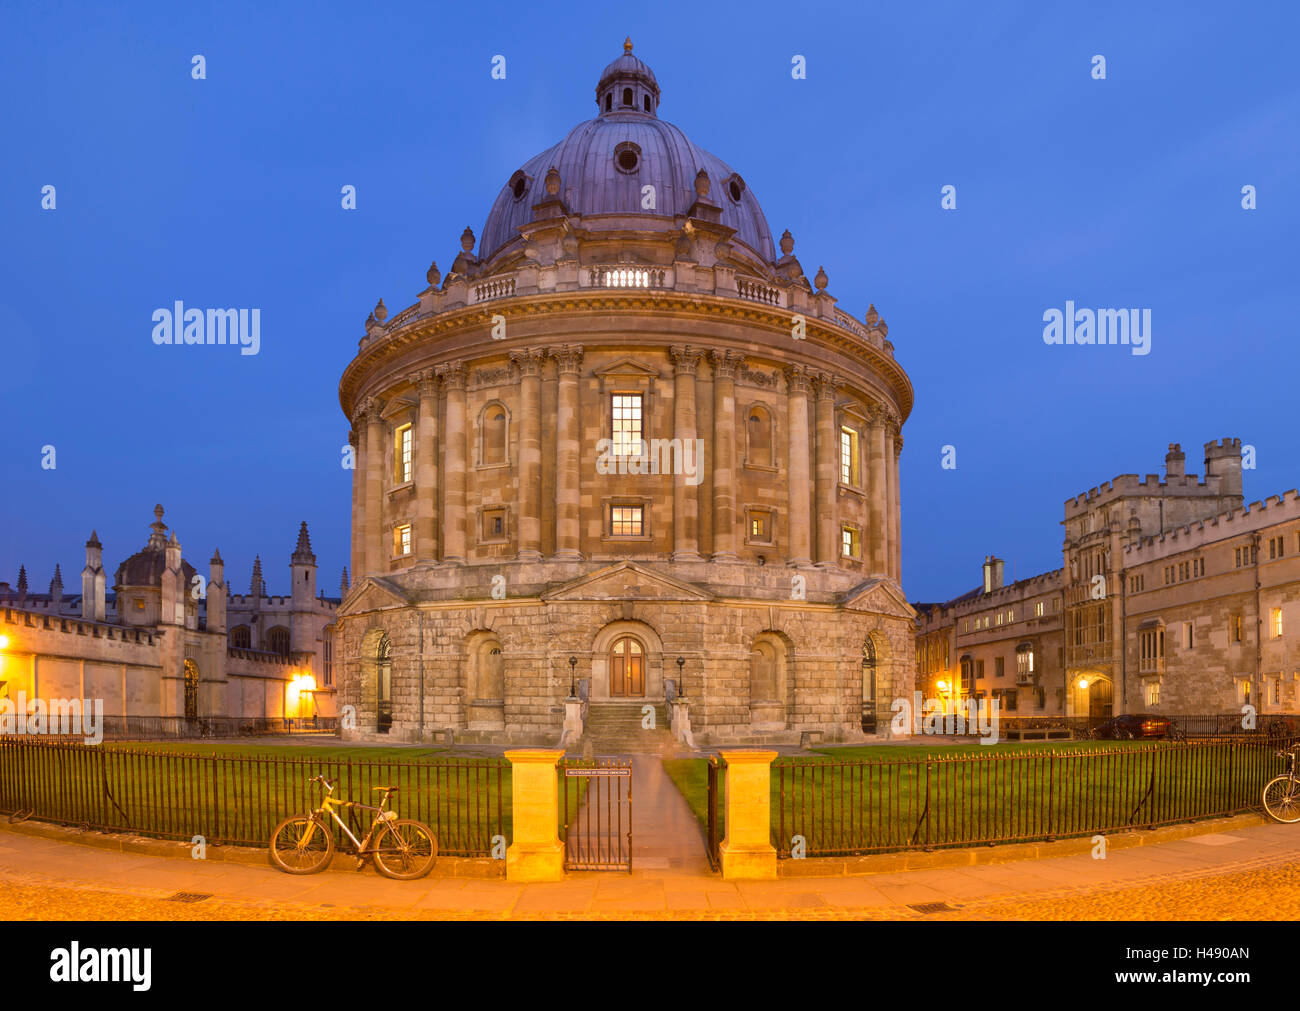 The Radcliffe Camera at twilight, Oxford, England. - Stock Image